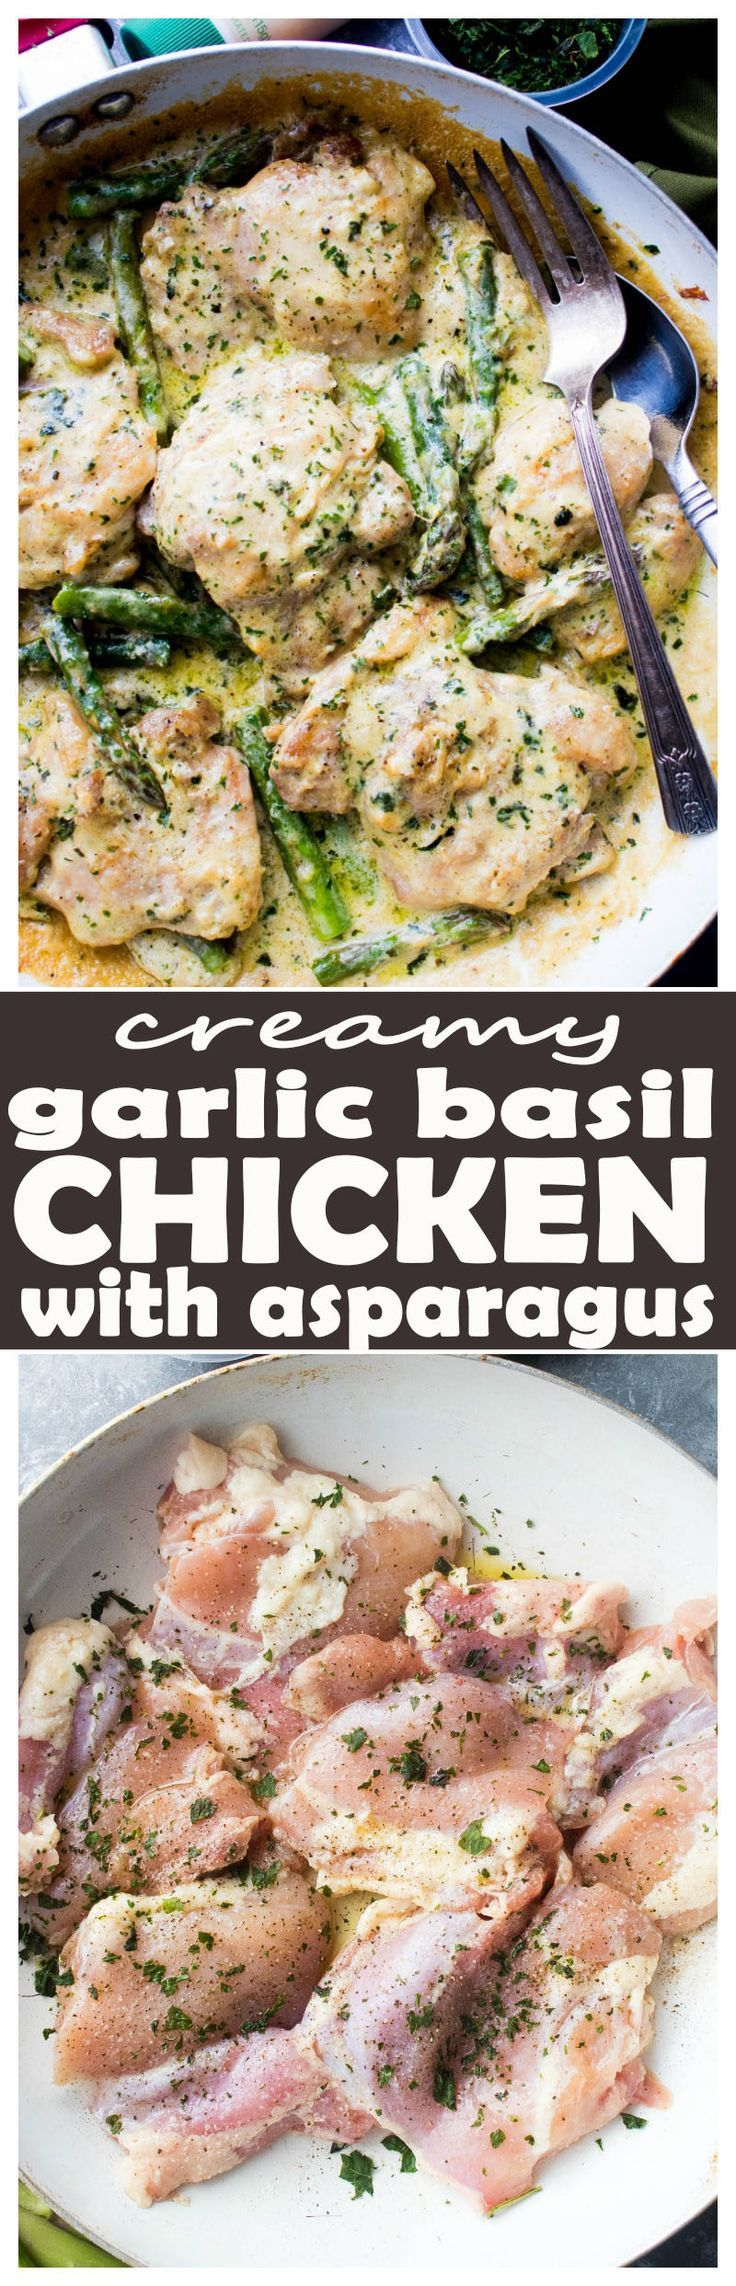 Creamy Garlic Basil Chicken with Asparagus - This delicious and cream-less Creamy Garlic Basil Chicken is prepared in a skillet with a flavorful garlicky basil sauce and asparagus spears. #GourmetGarden #ad